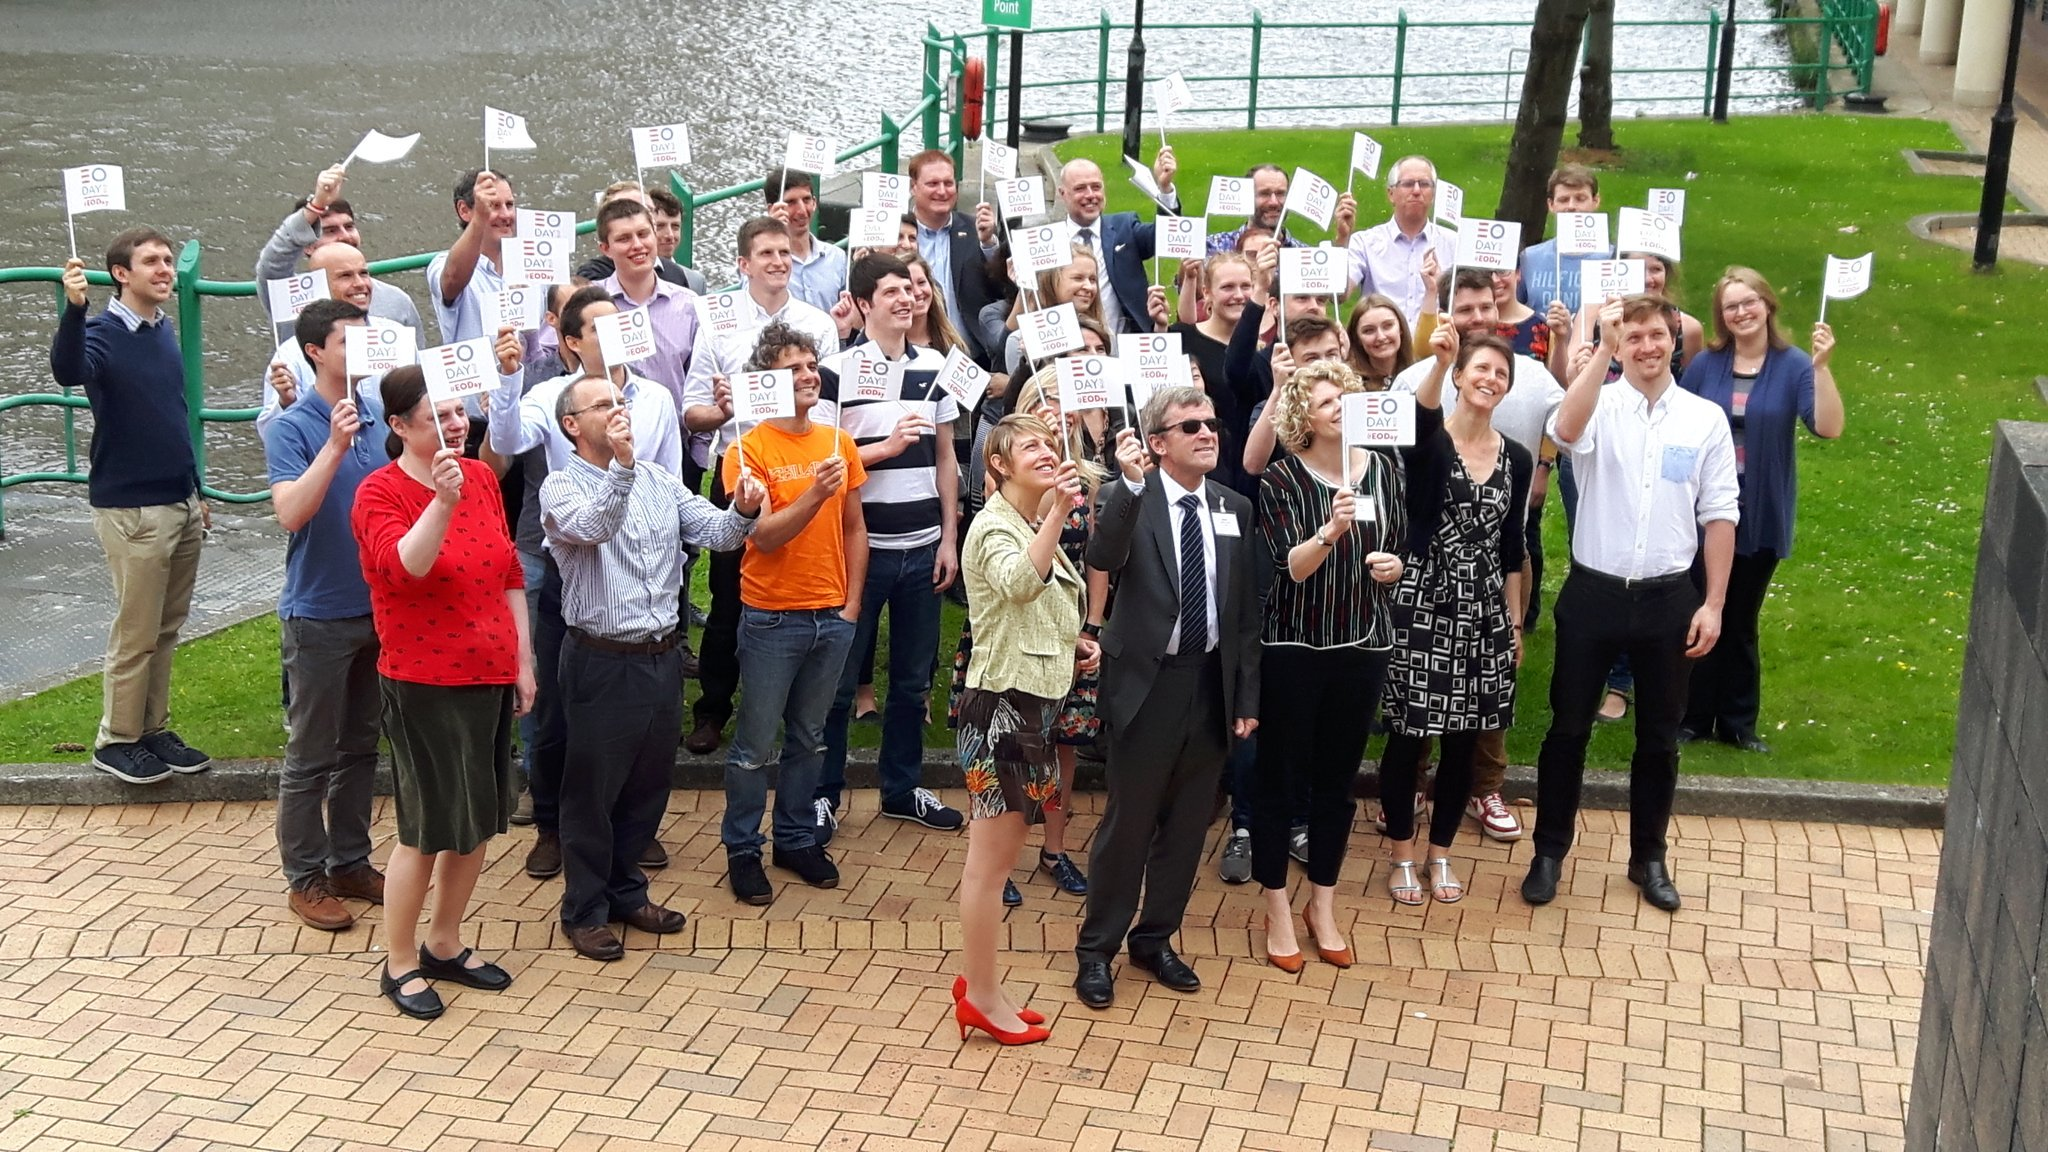 .@ArupUKMEA and @WalesCoOpCentre staff celebrating #EODay! #EmployeeOwnership #Wales https://t.co/z5N488prm8